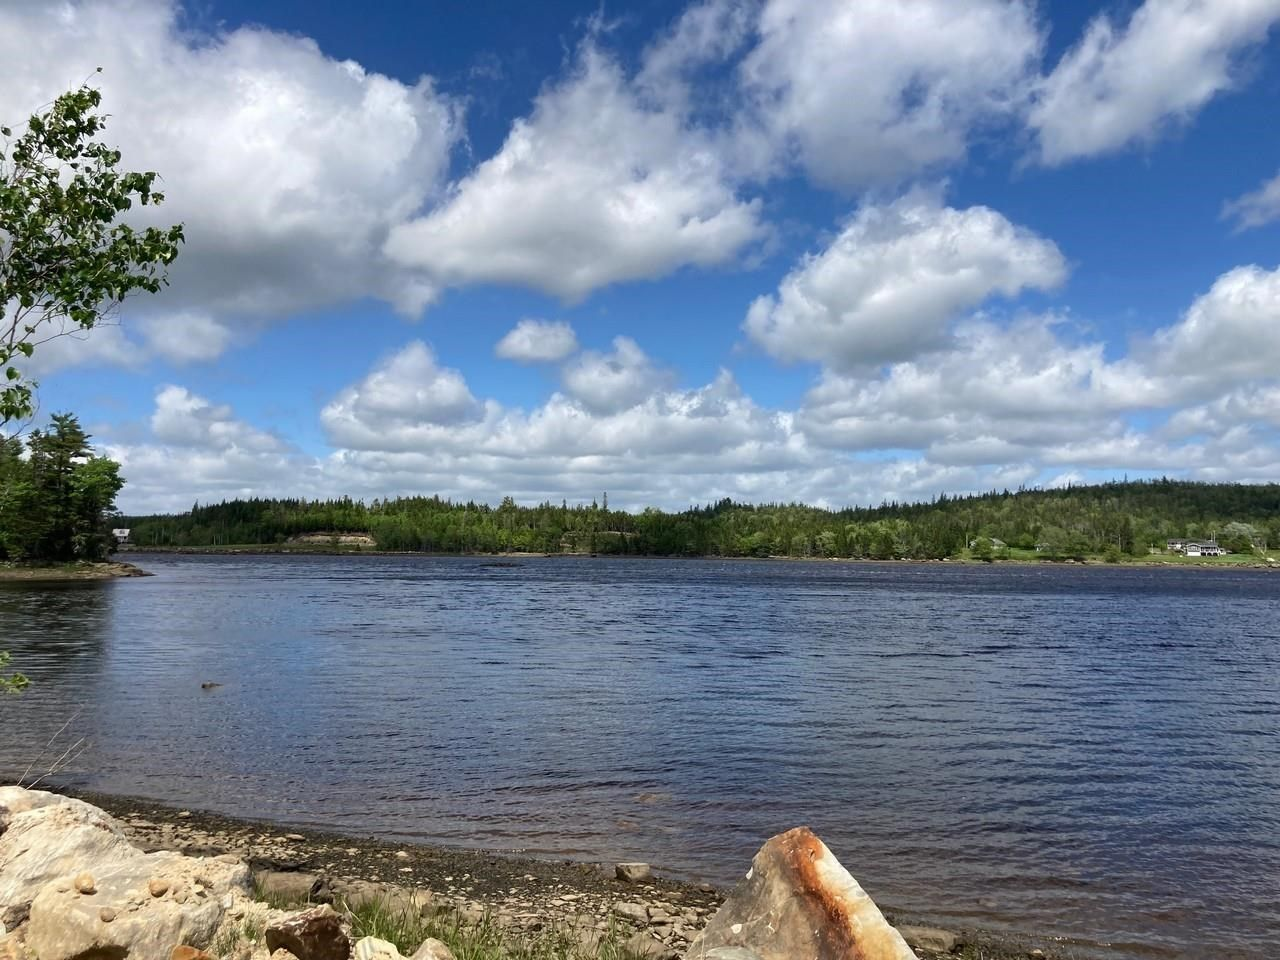 Main Photo: Lot 29 Anderson Drive in Sherbrooke: 303-Guysborough County Vacant Land for sale (Highland Region)  : MLS®# 202115631